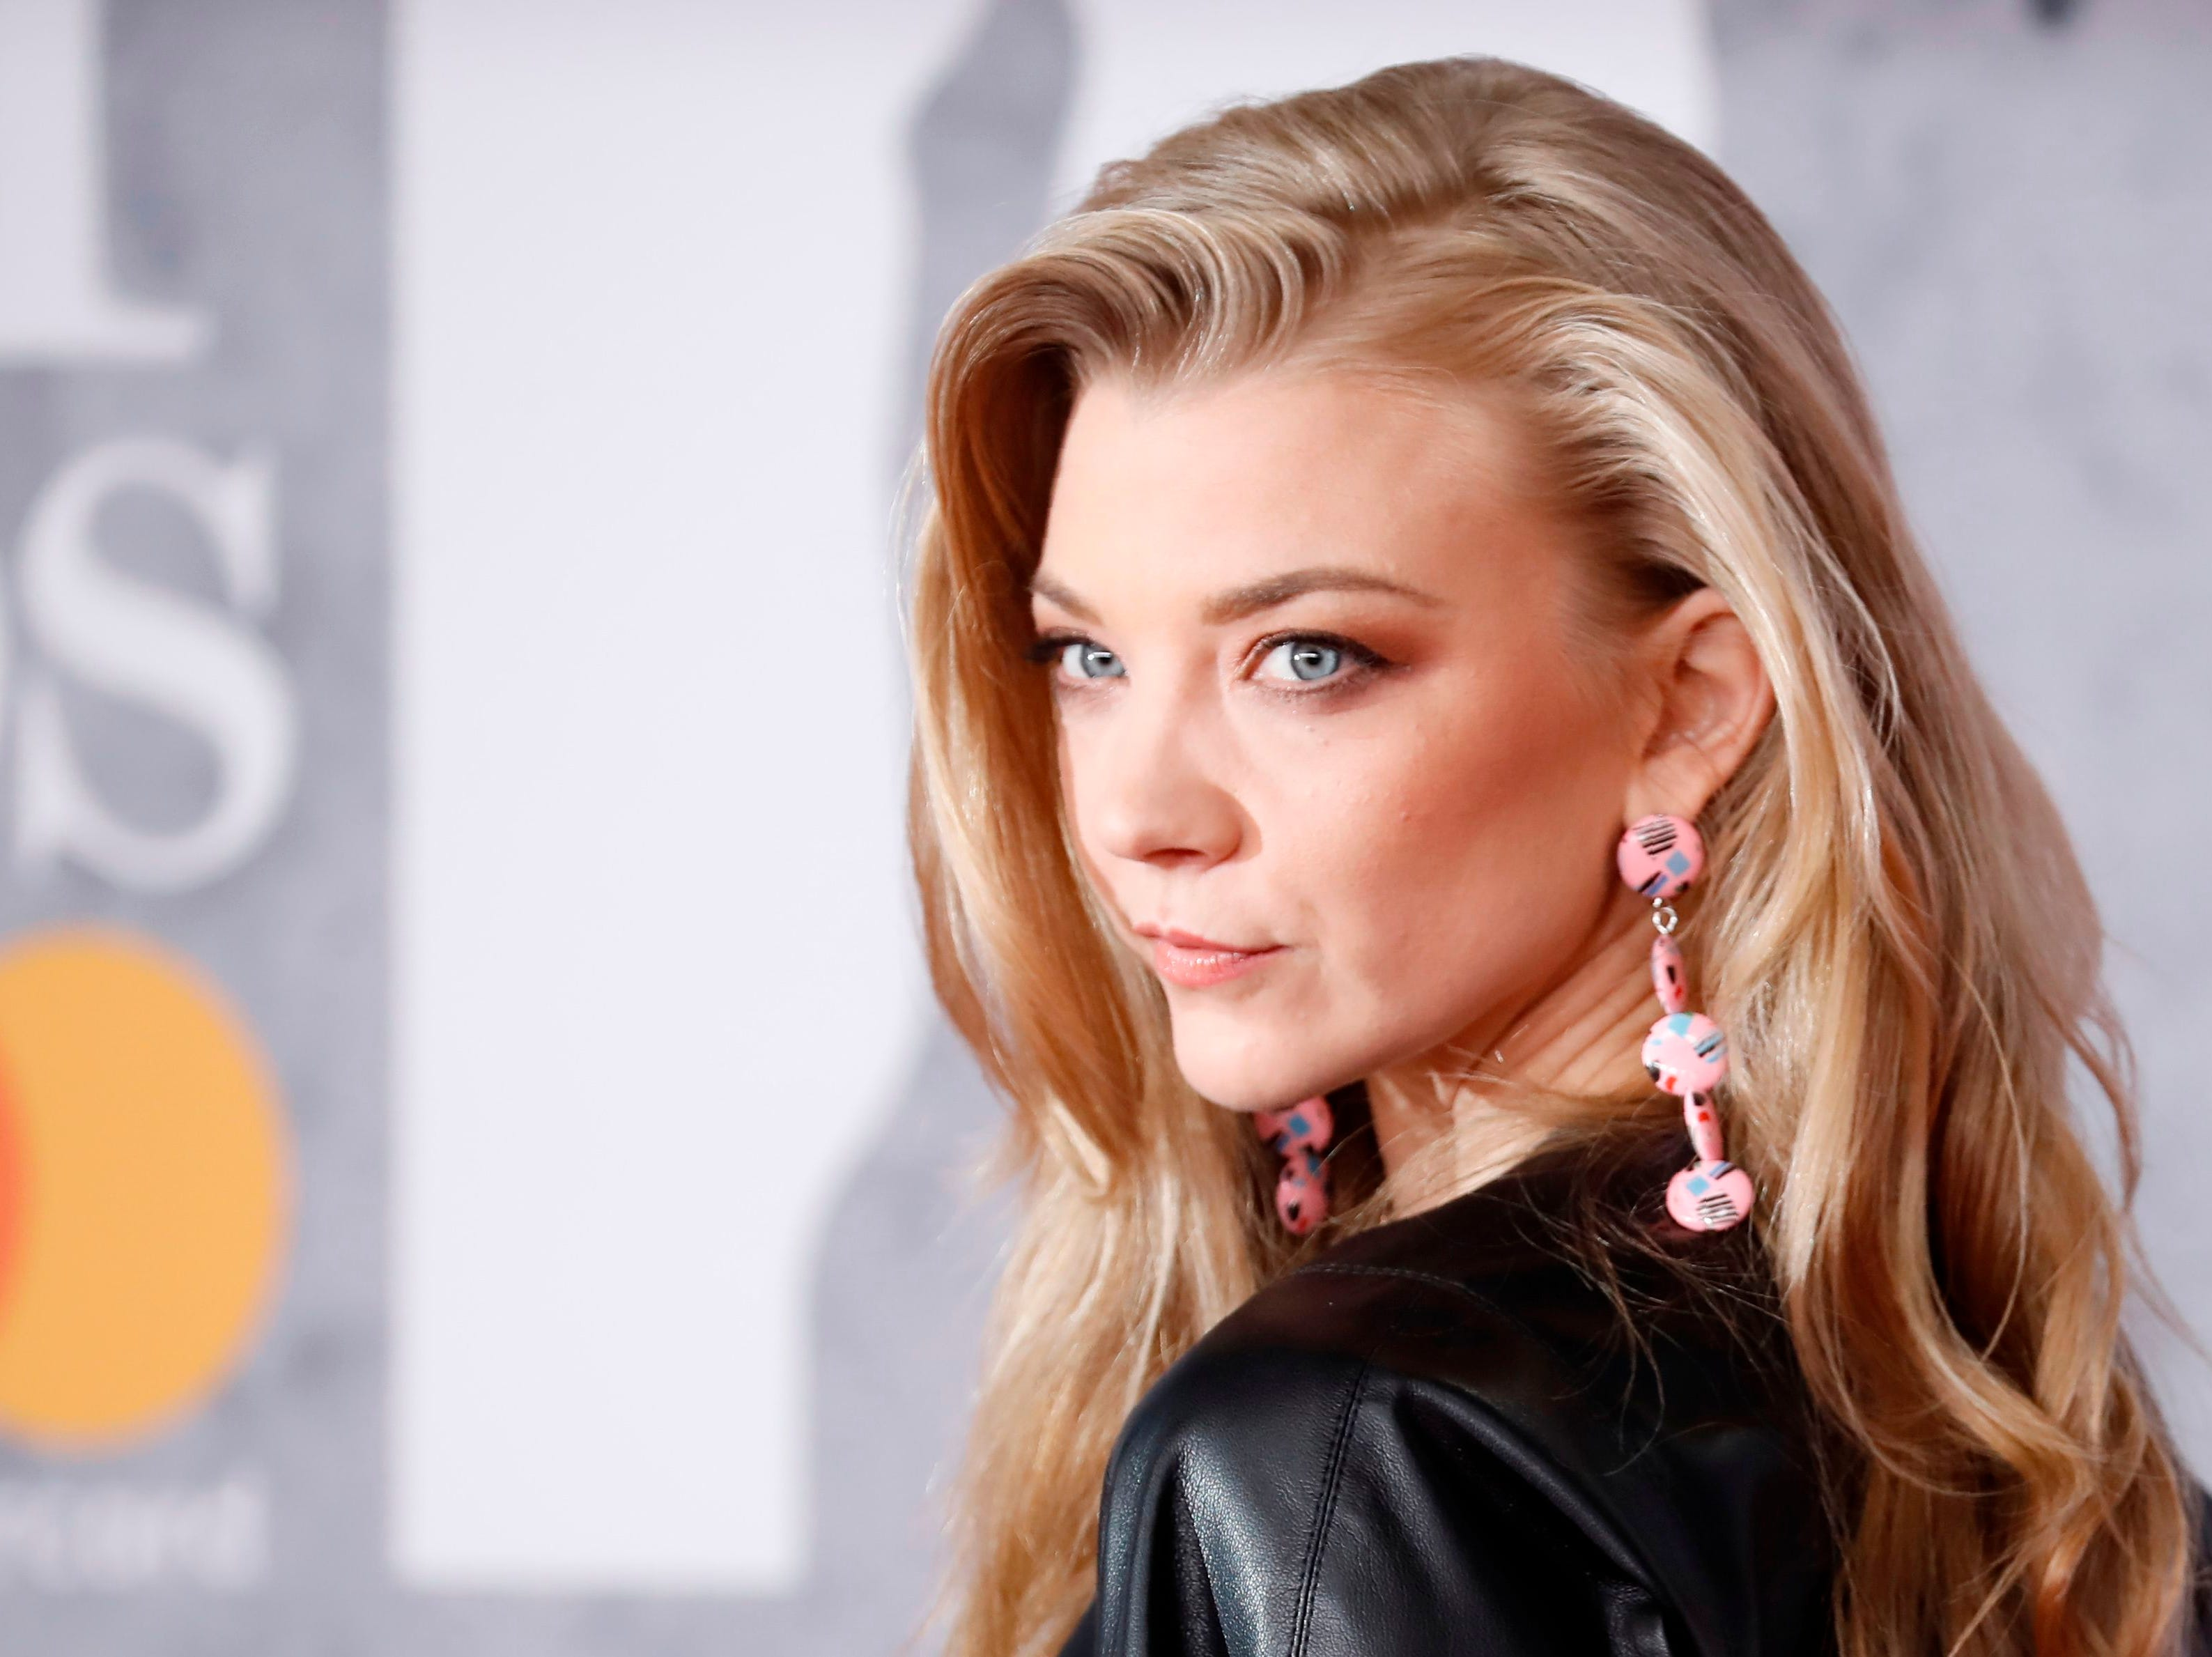 British actor Natalie Dormer reacts on the red carpet on arrival for the BRIT Awards 2019 in London on February 20, 2019. (Photo by Tolga AKMEN / AFP) / RESTRICTED TO EDITORIAL USE  NO POSTERS  NO MERCHANDISE NO USE IN PUBLICATIONS DEVOTED TO ARTISTSTOLGA AKMEN/AFP/Getty Images ORIG FILE ID: AFP_1DO25K